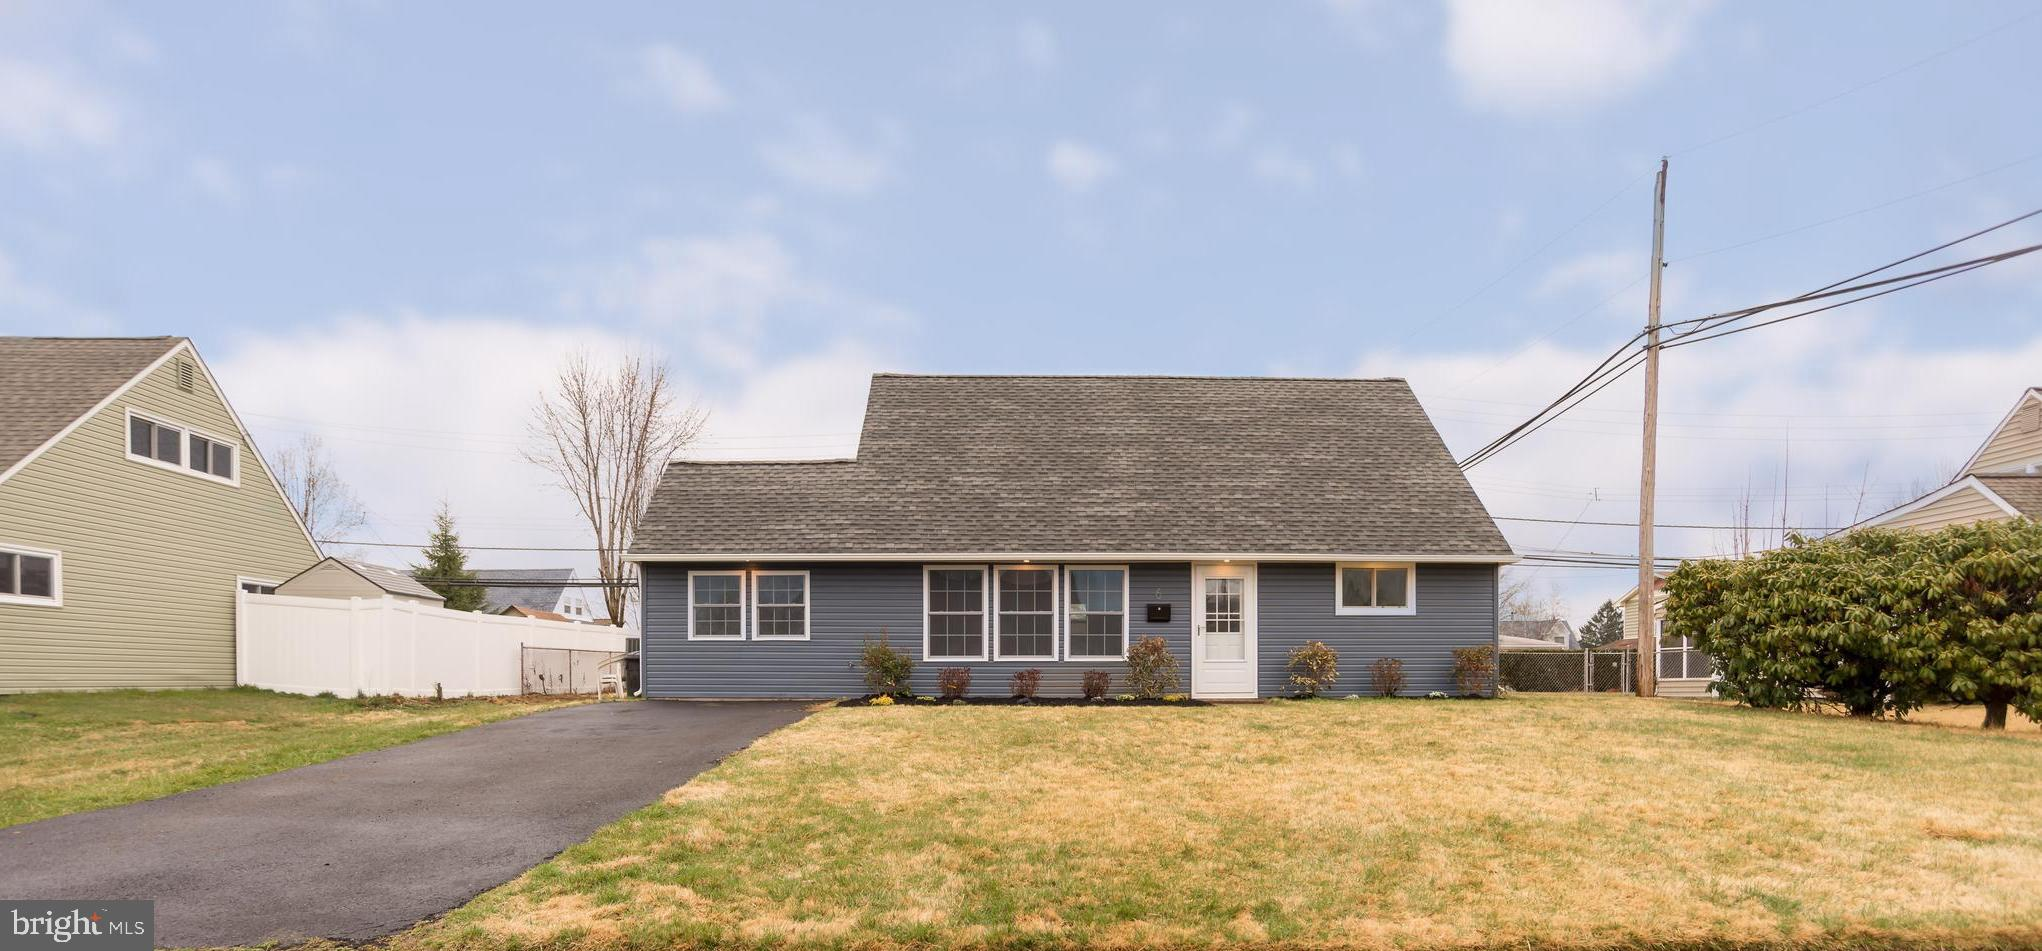 6 HEARTH ROAD, LEVITTOWN, PA 19056